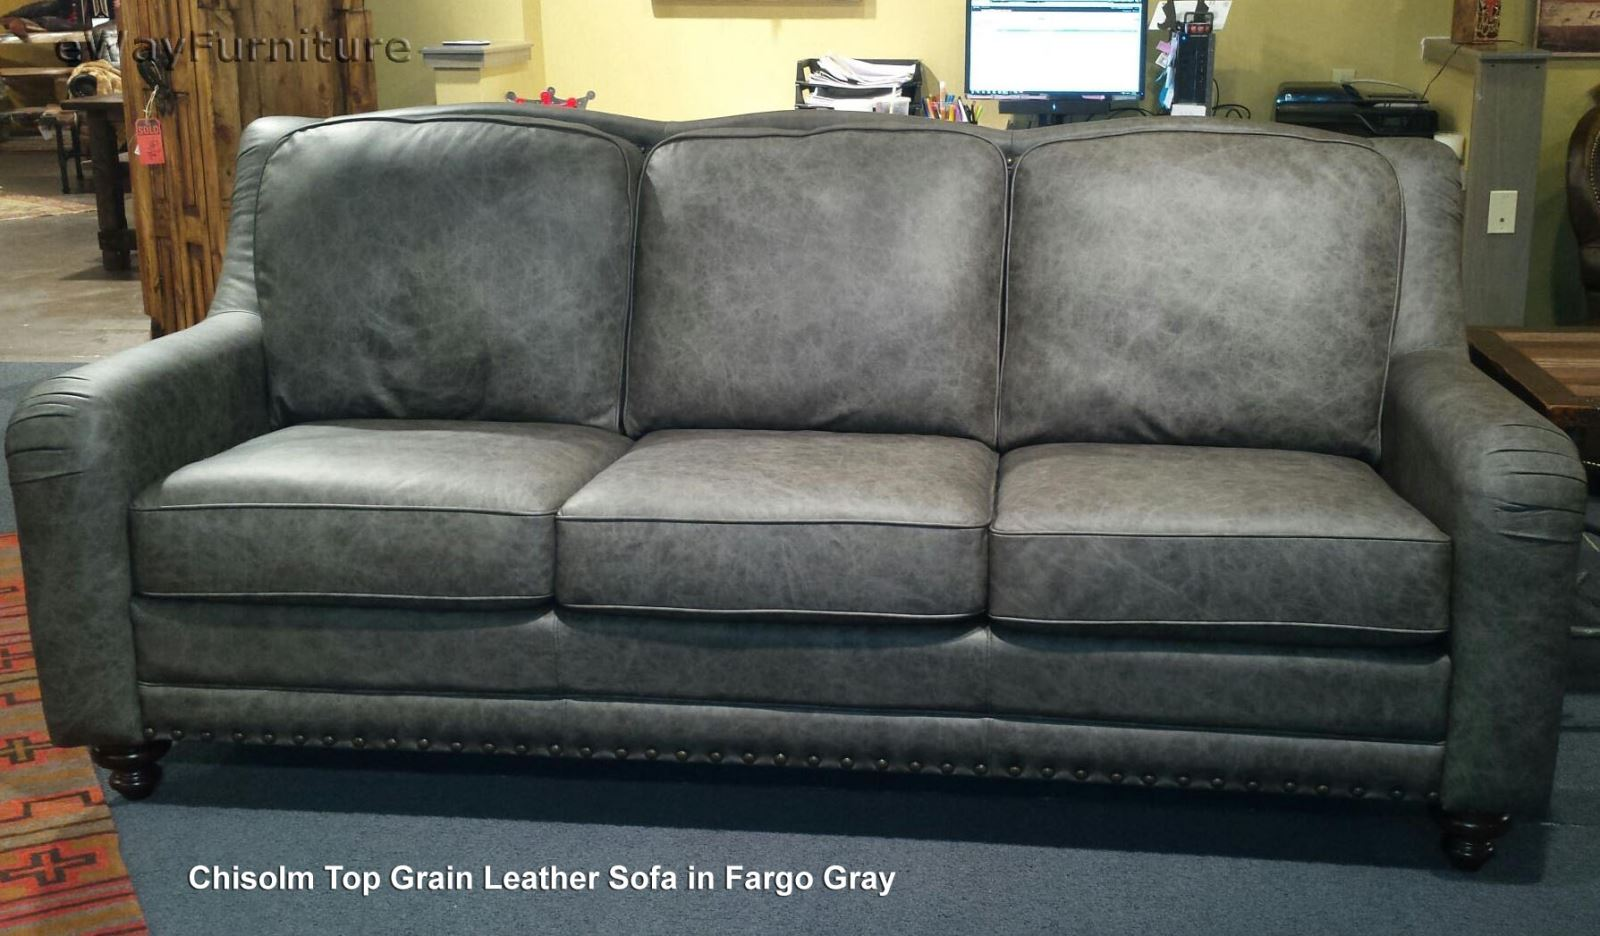 Chisolm Top Grain Leather Sofa In Fargo Gray Made In Usa